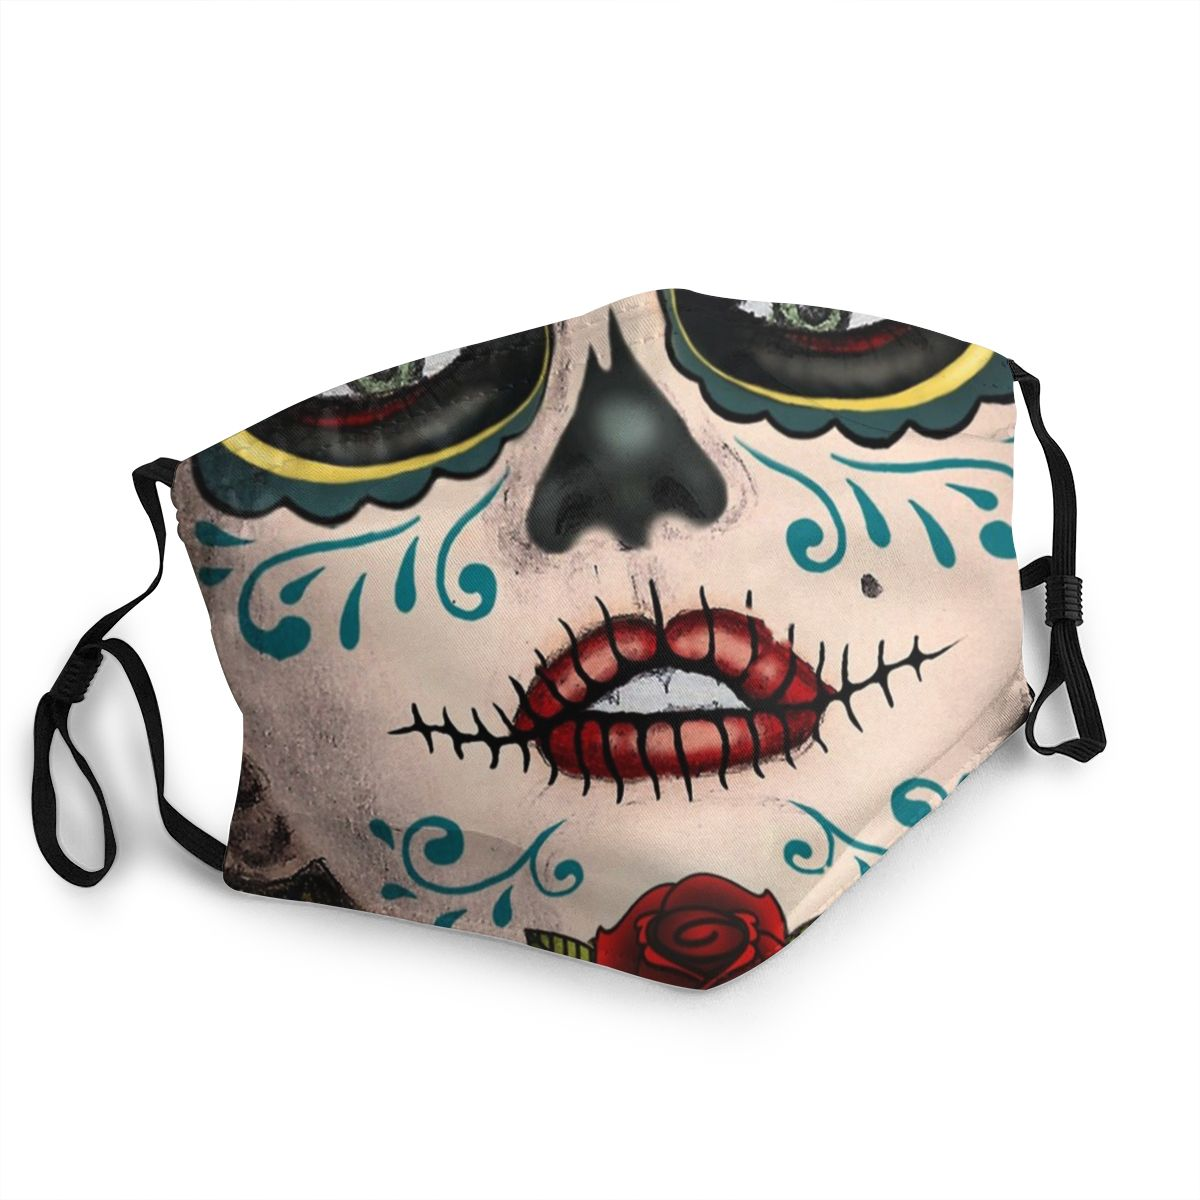 Catrina Lips Adult Non-Disposable Mouth Face Mask Anti Haze Dust Protection Cover Respirator